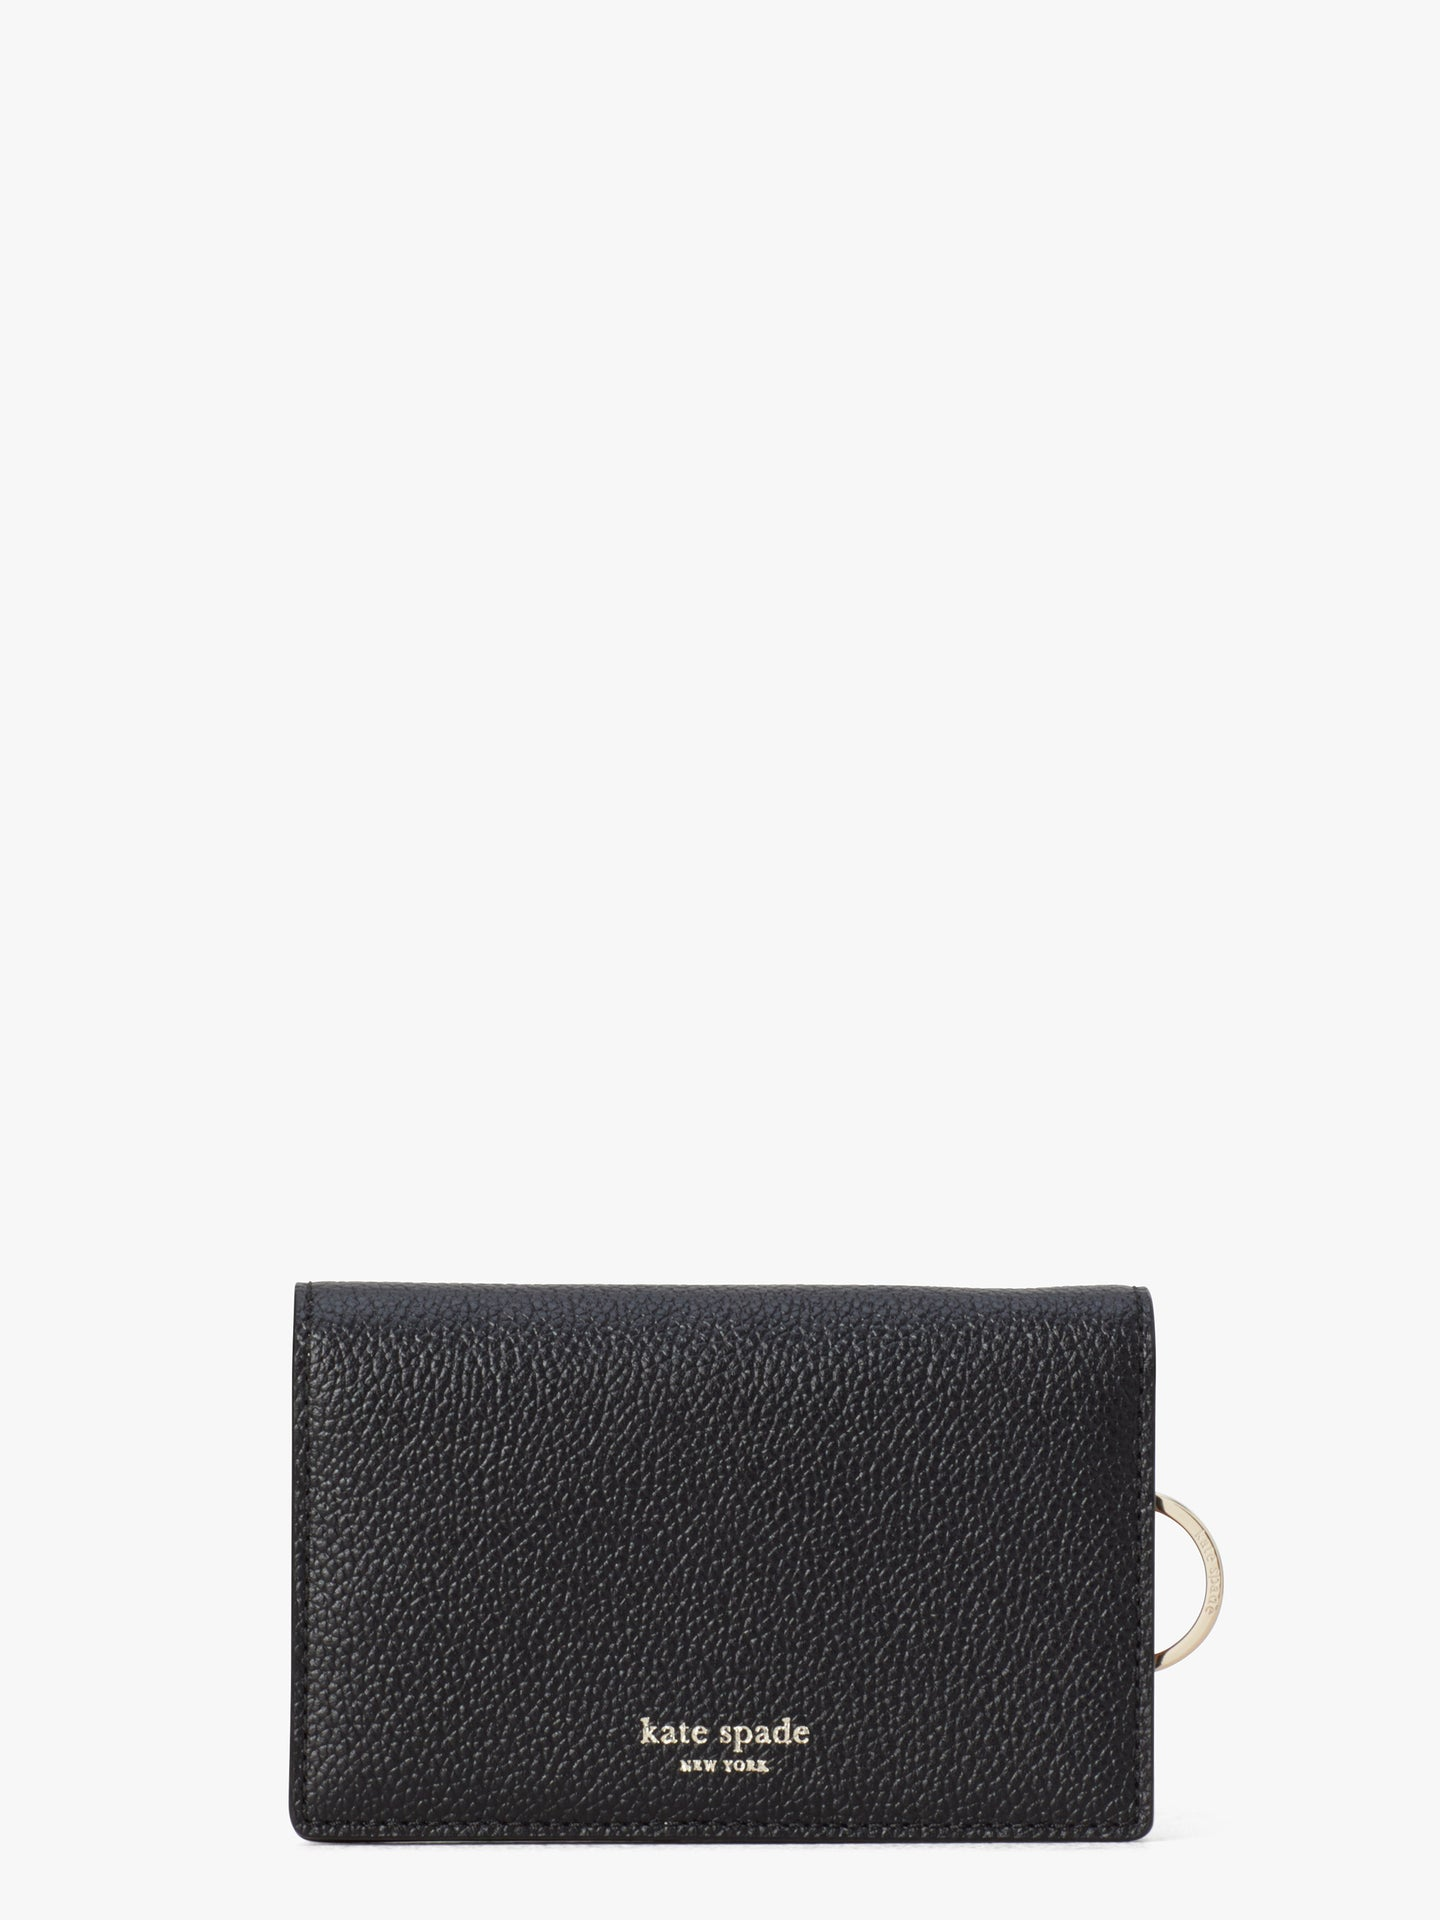 MARGAUX SMALL KEY RING WALLET